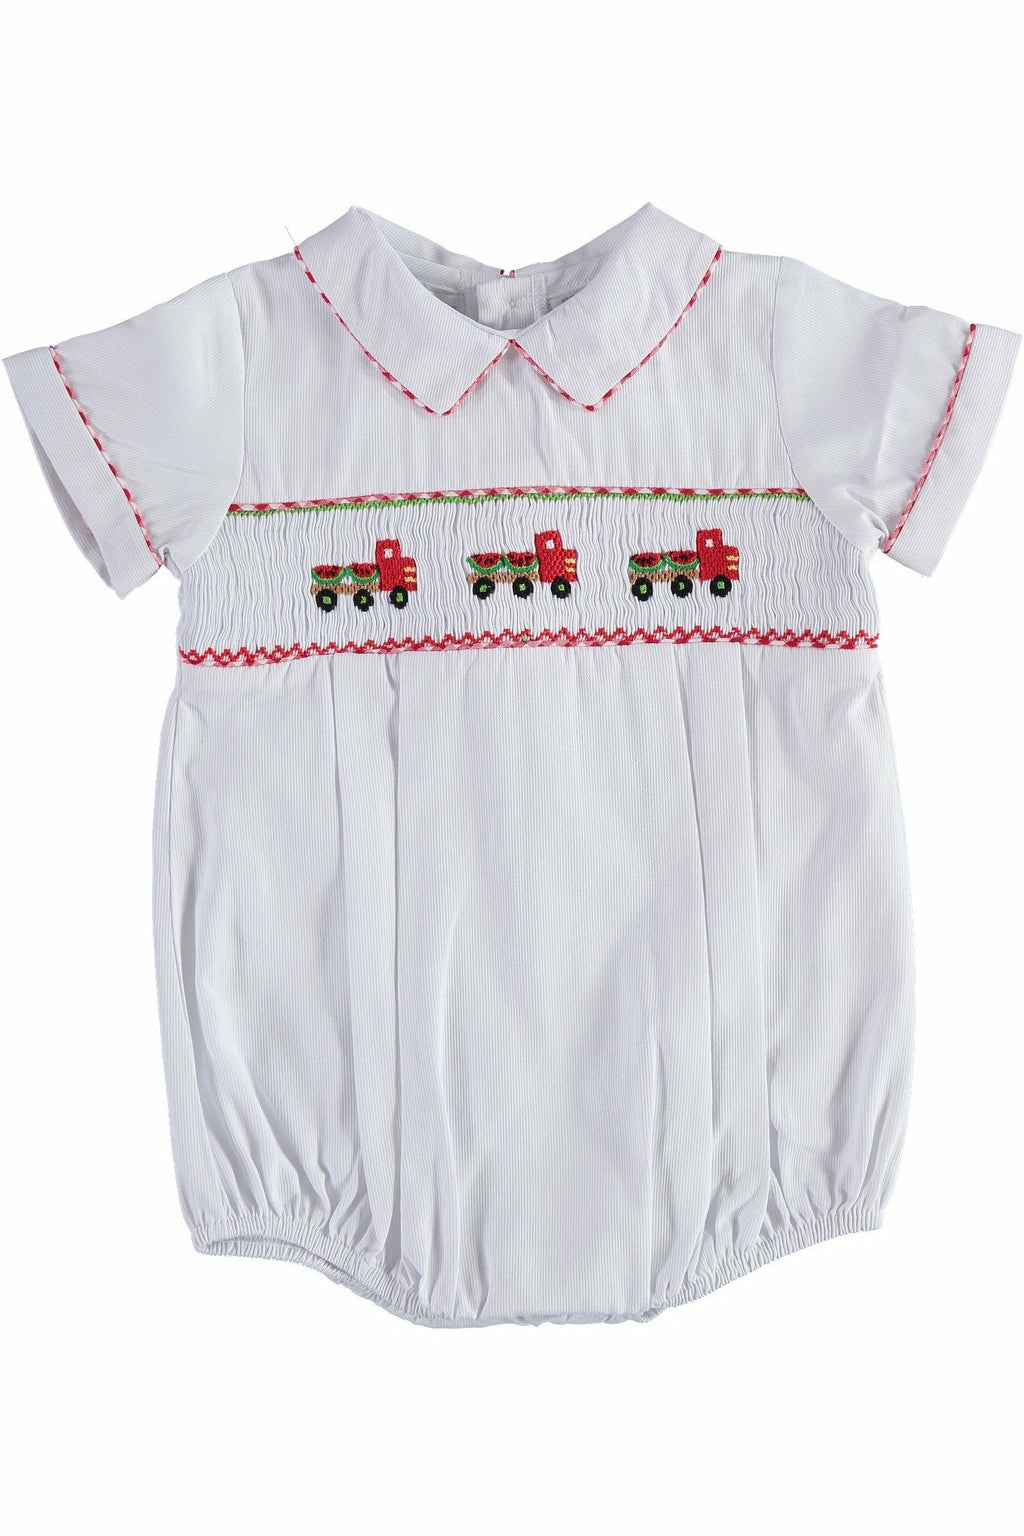 Carriage Boutique Baby Boy White Bubble with Smocked Watermelon Truck